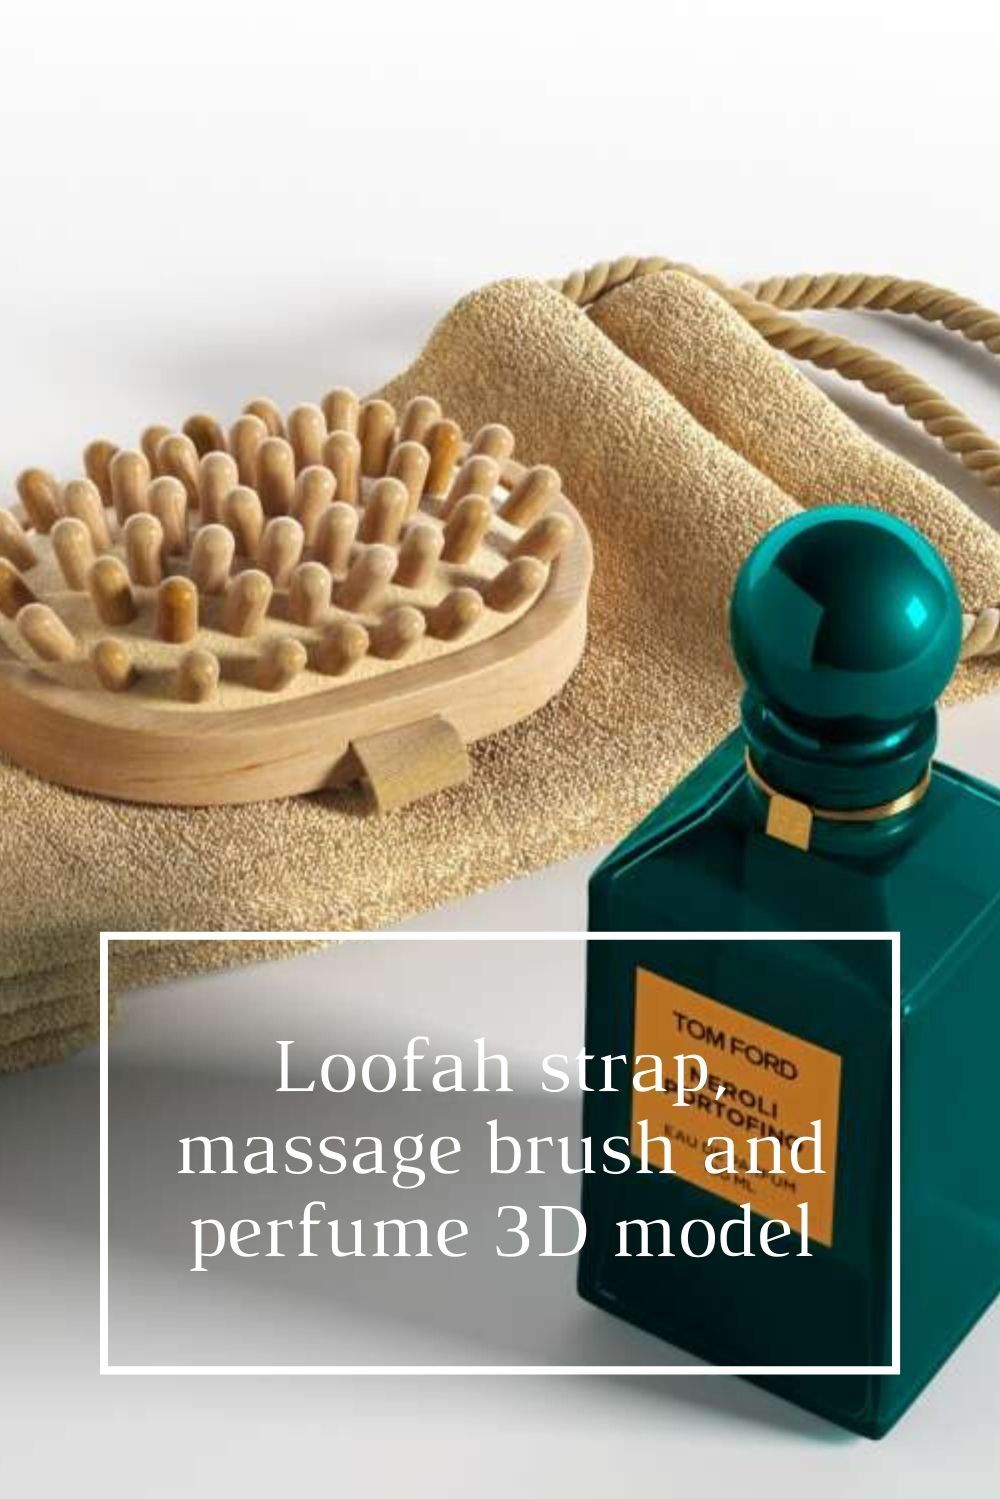 👉 Loofah strap, massage brush and perfume bottle 3D model. The perfect set to create a space dedicated to well-being!  Visit our website!  #3dmodel #3dinterior #3dobjects